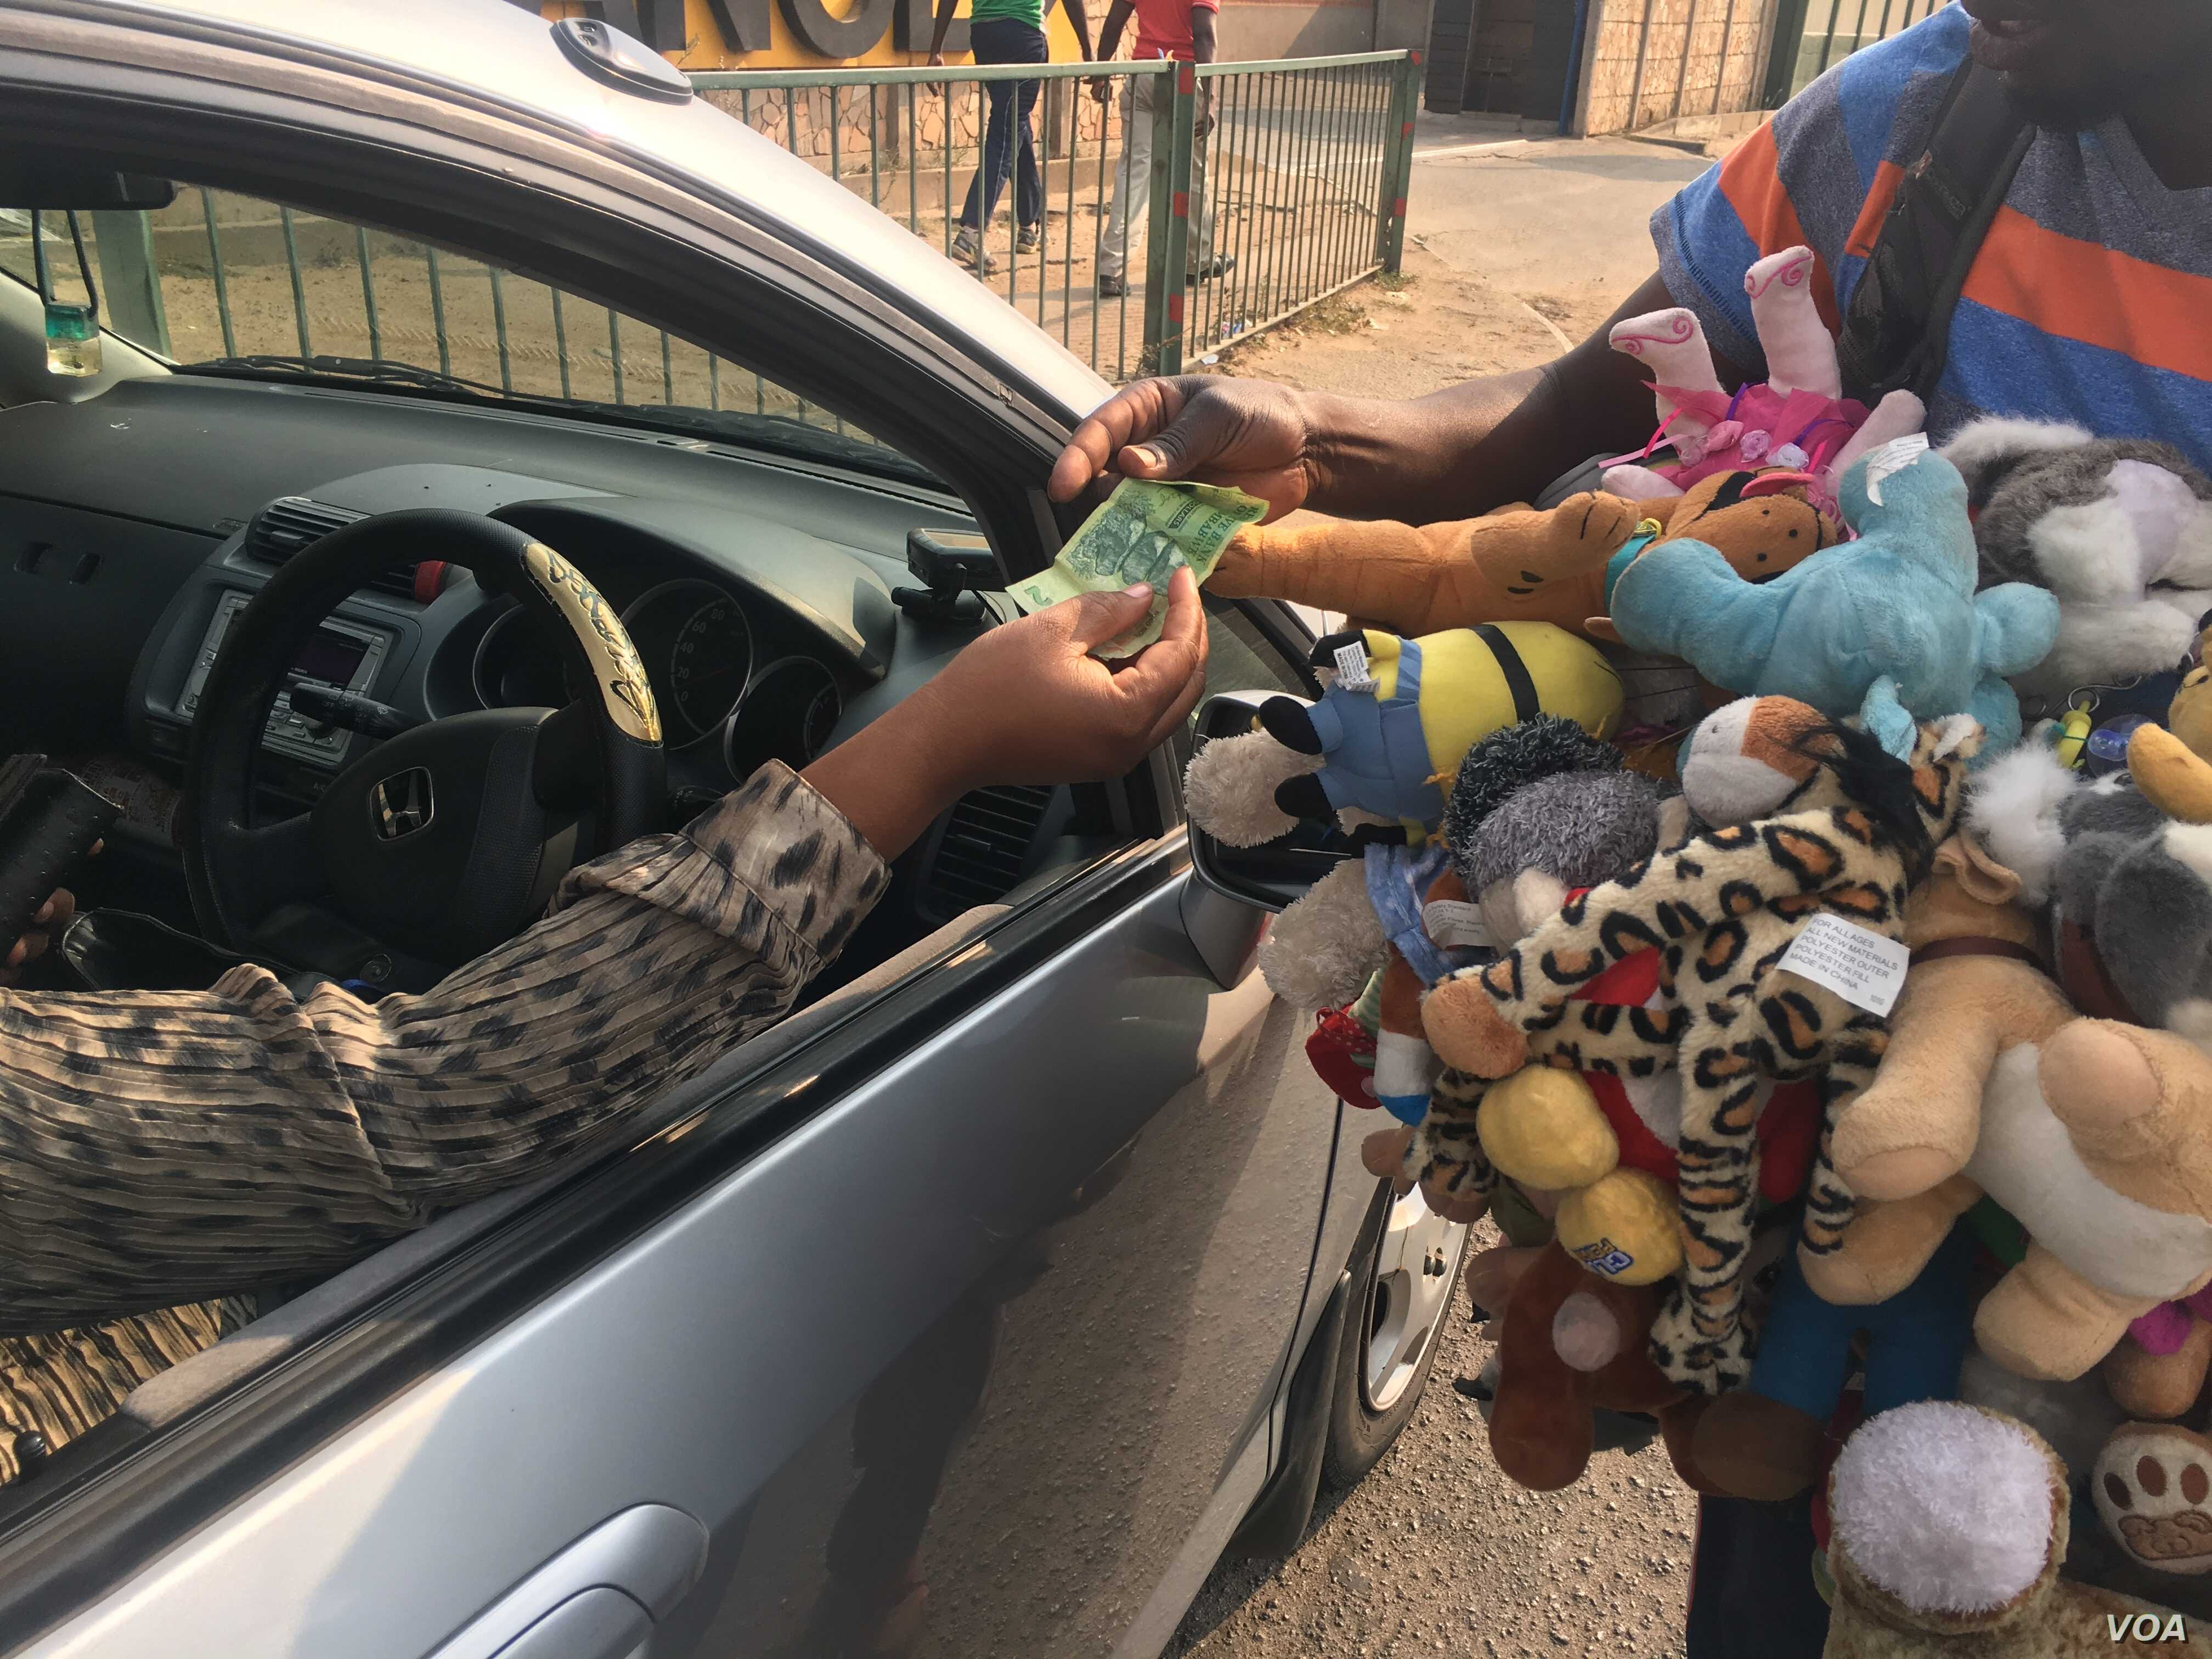 A vendor sells dolls at an intersection in central Harare, Zimbabwe, Oct. 2017. (S. Mhofu/VOA)